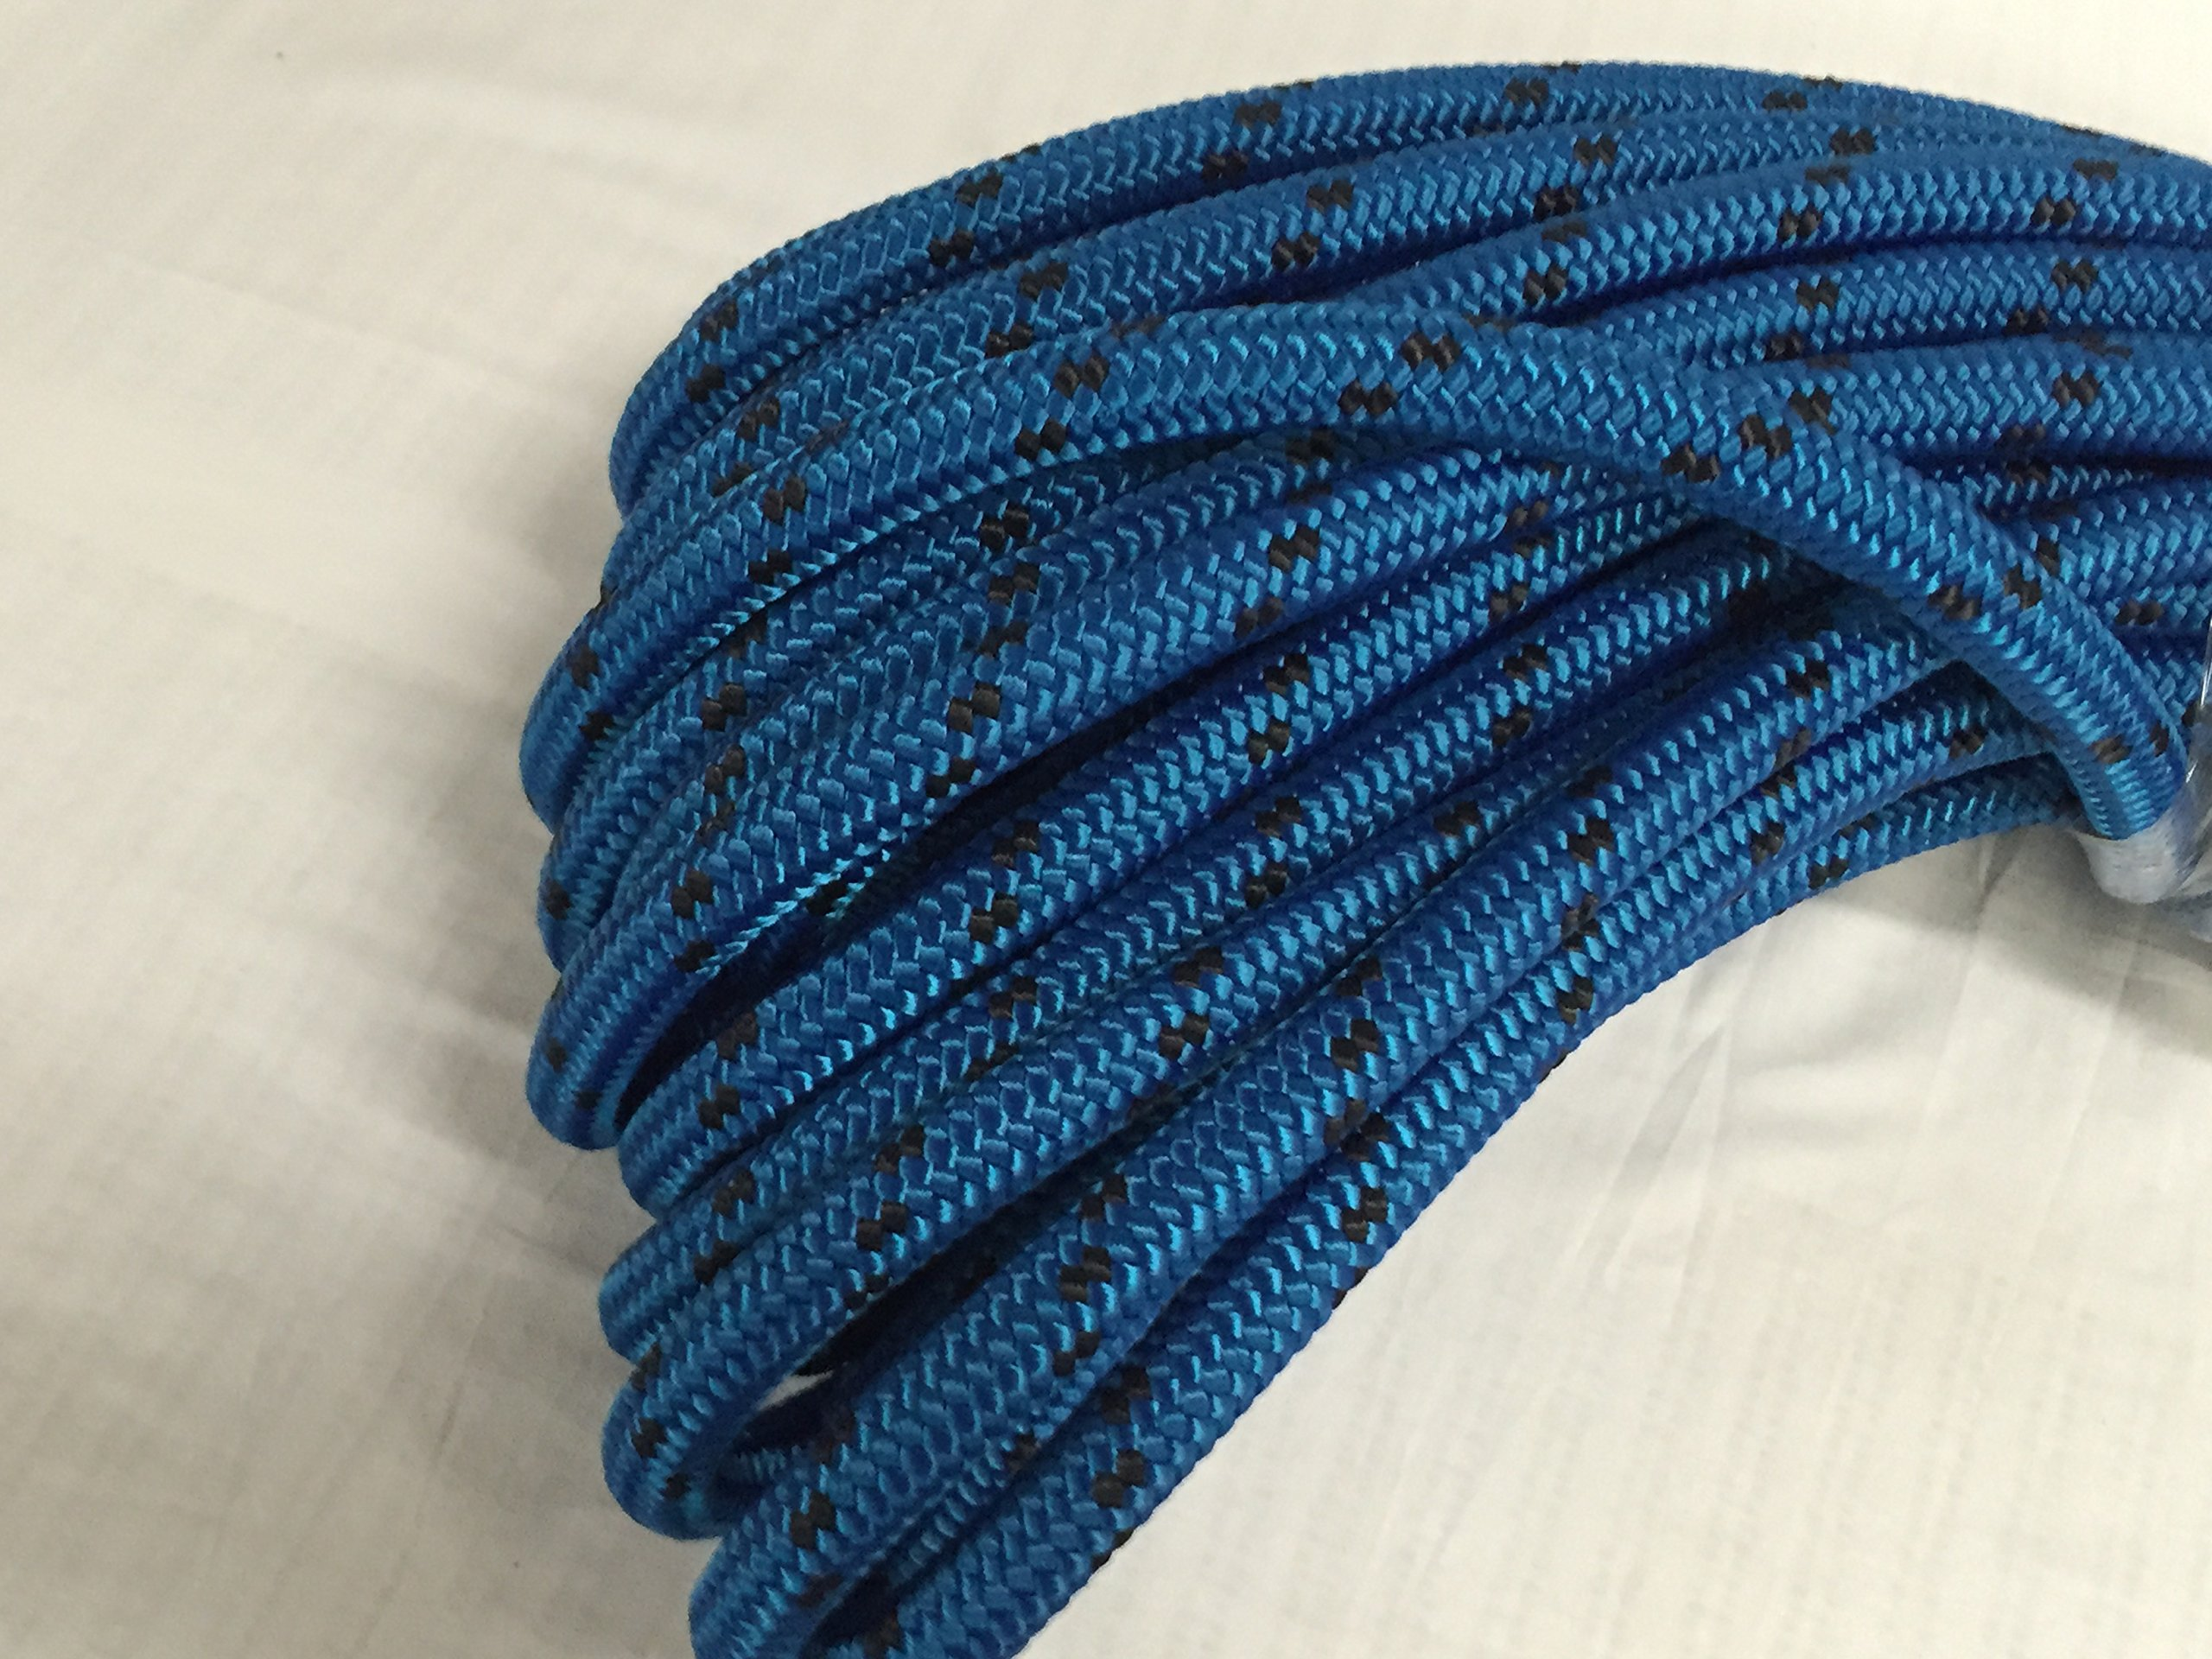 5/8'' X 150' Double Braid Polyester Arborist Bull Rope, Blue/Black